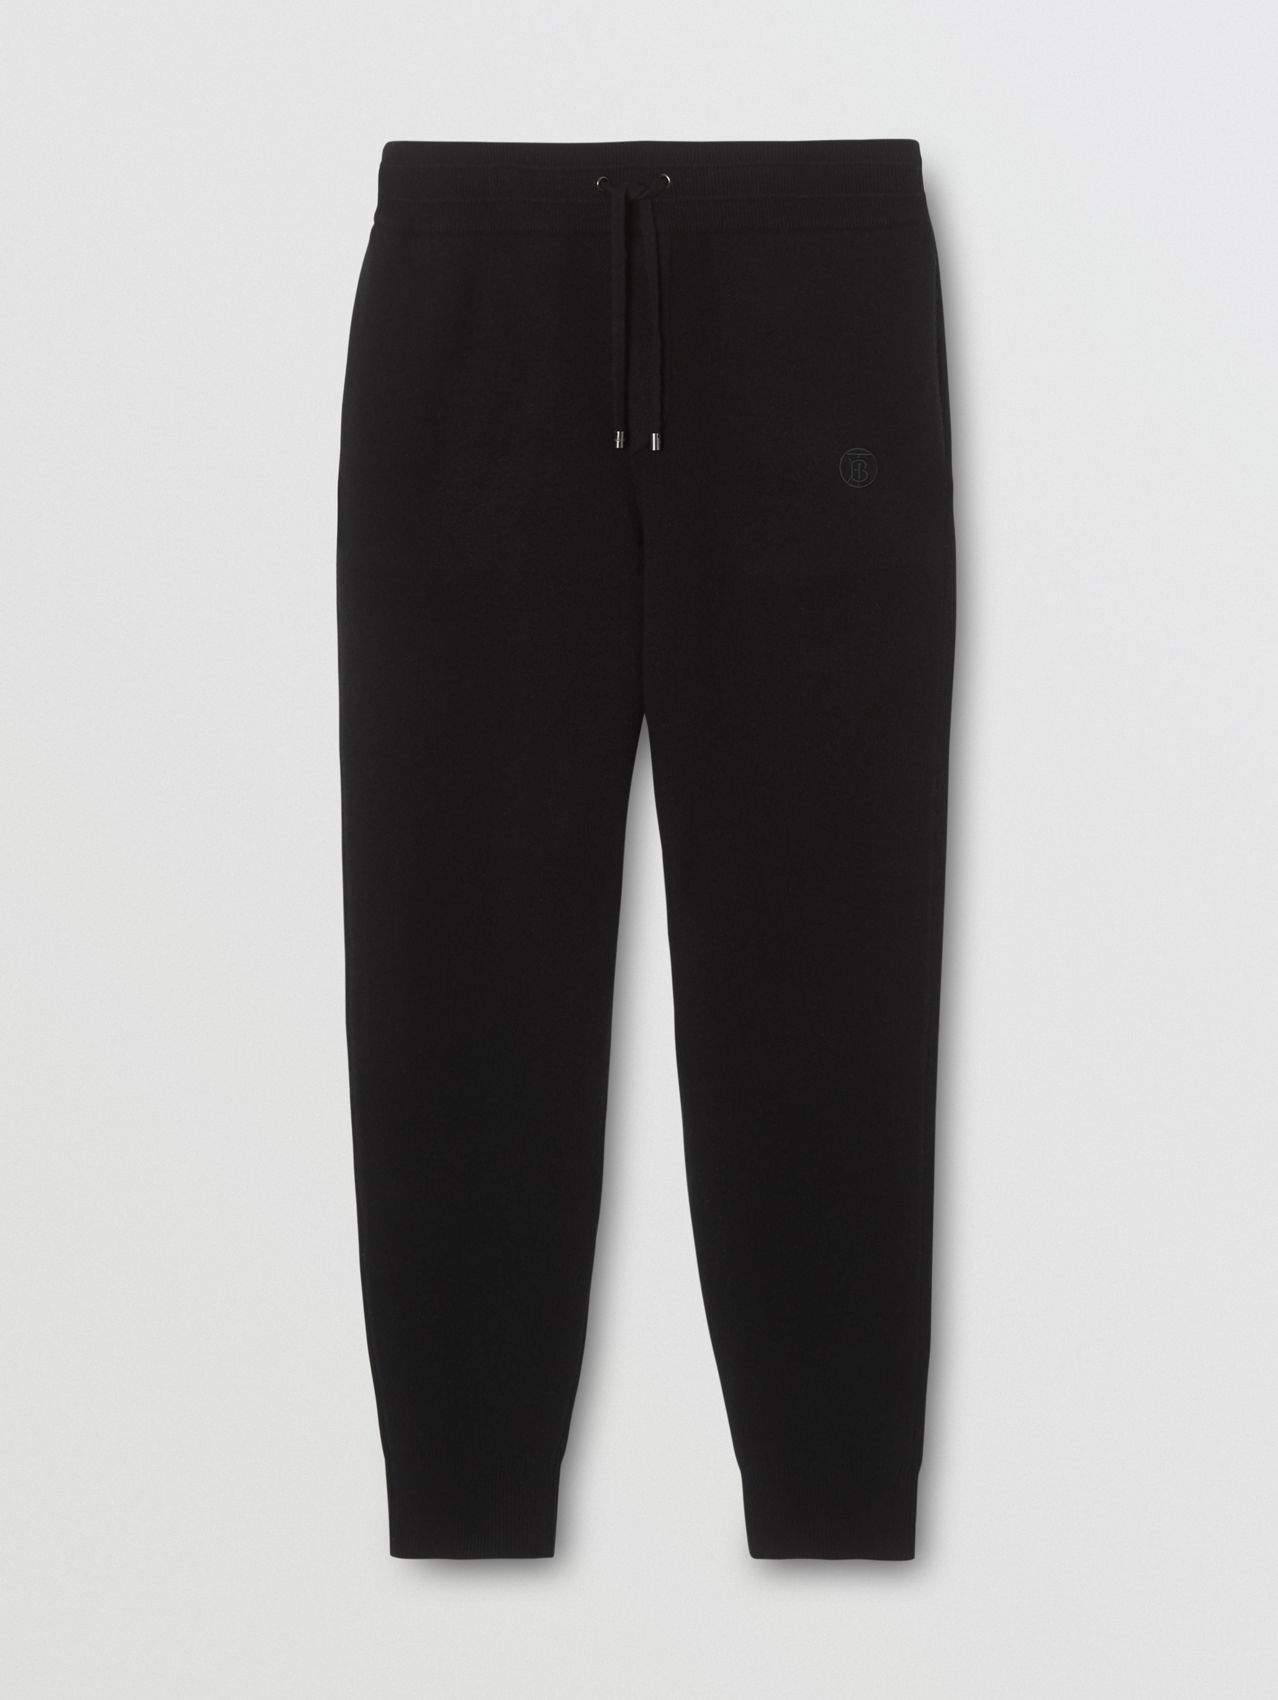 Monogram Motif Cashmere Blend Jogging Pants in Black